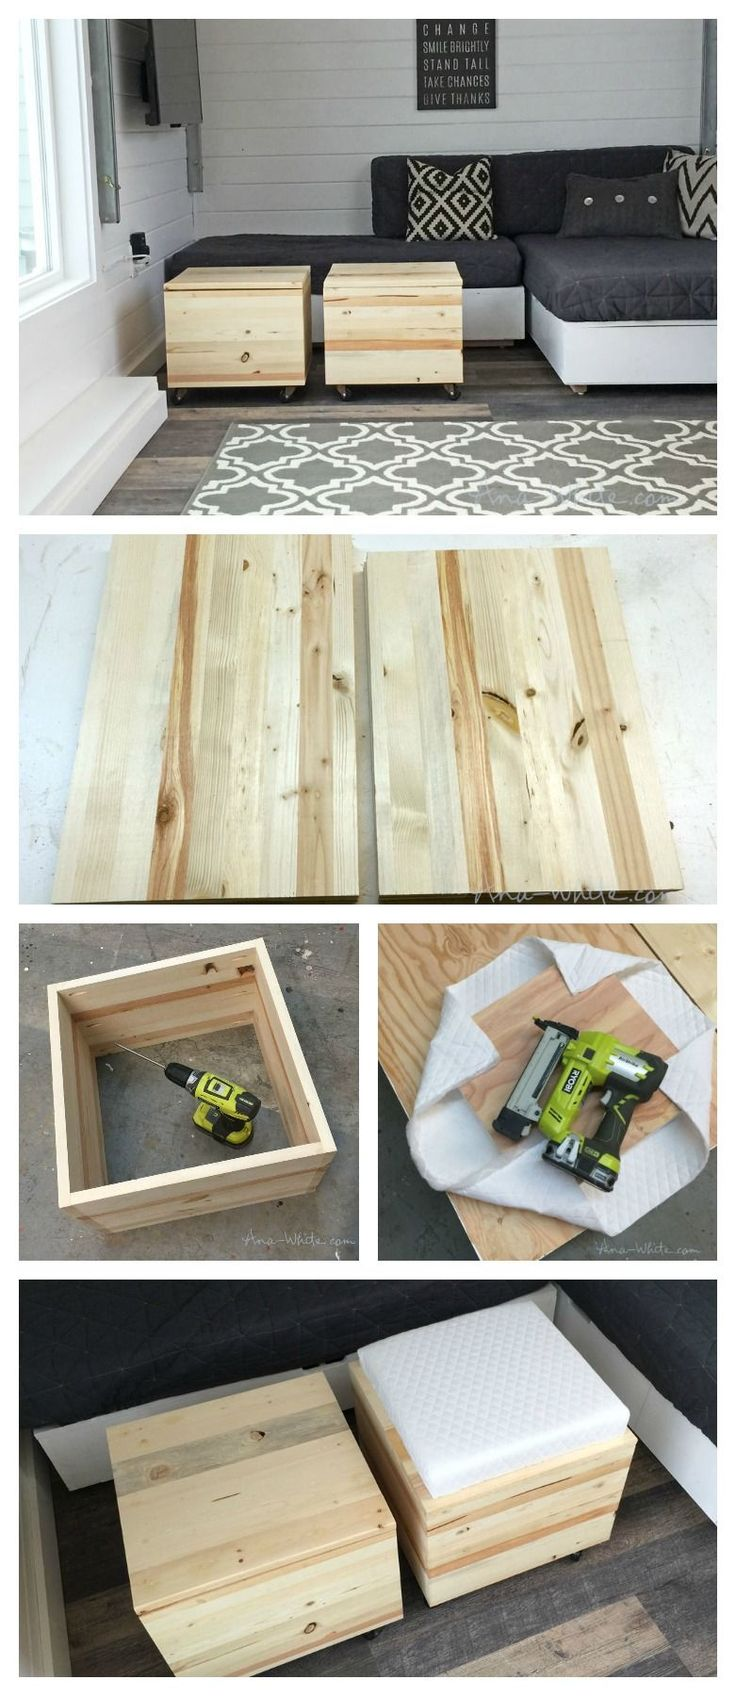 Table success do it yourself home projects from ana white diy 85 - Easy Ana White Wood Storage Stools Diy Projects